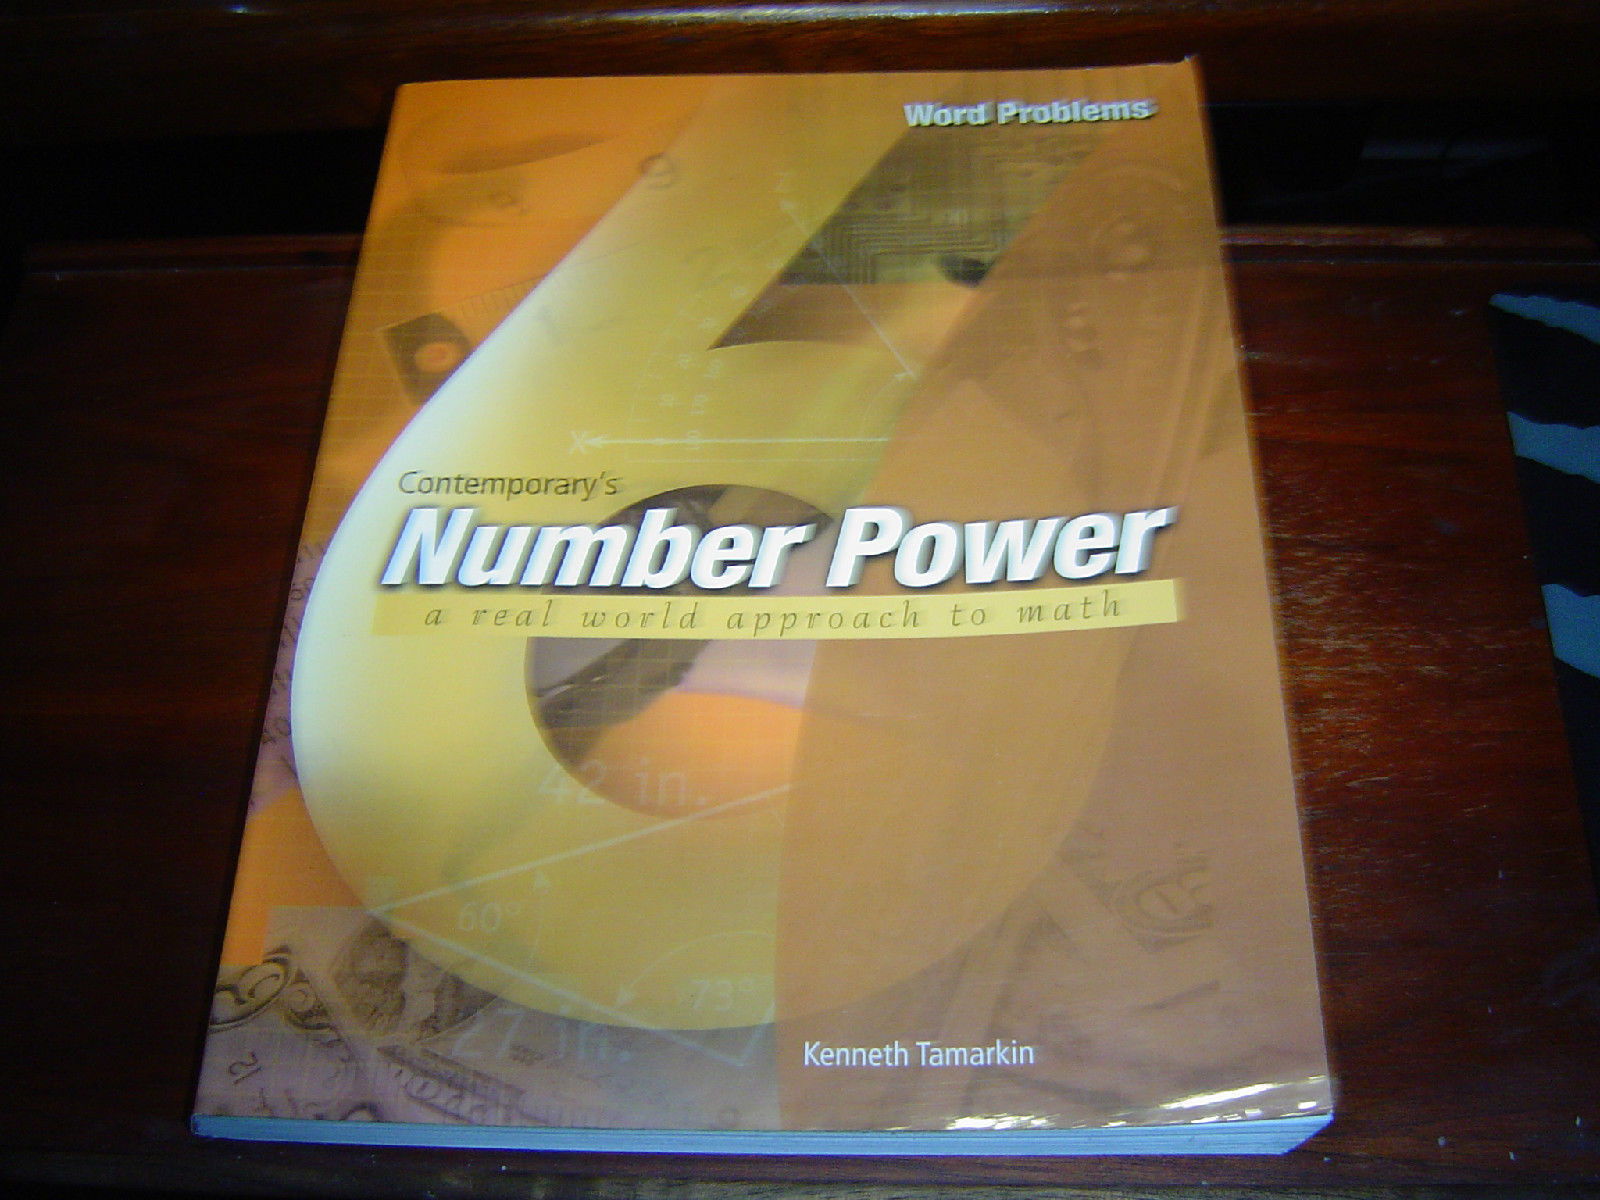 Primary image for CONTEMPORARY'S NUMBER POWER VOLUME 6 WORD PROBLEMS A REAL WORLD APPROACH TO MATH